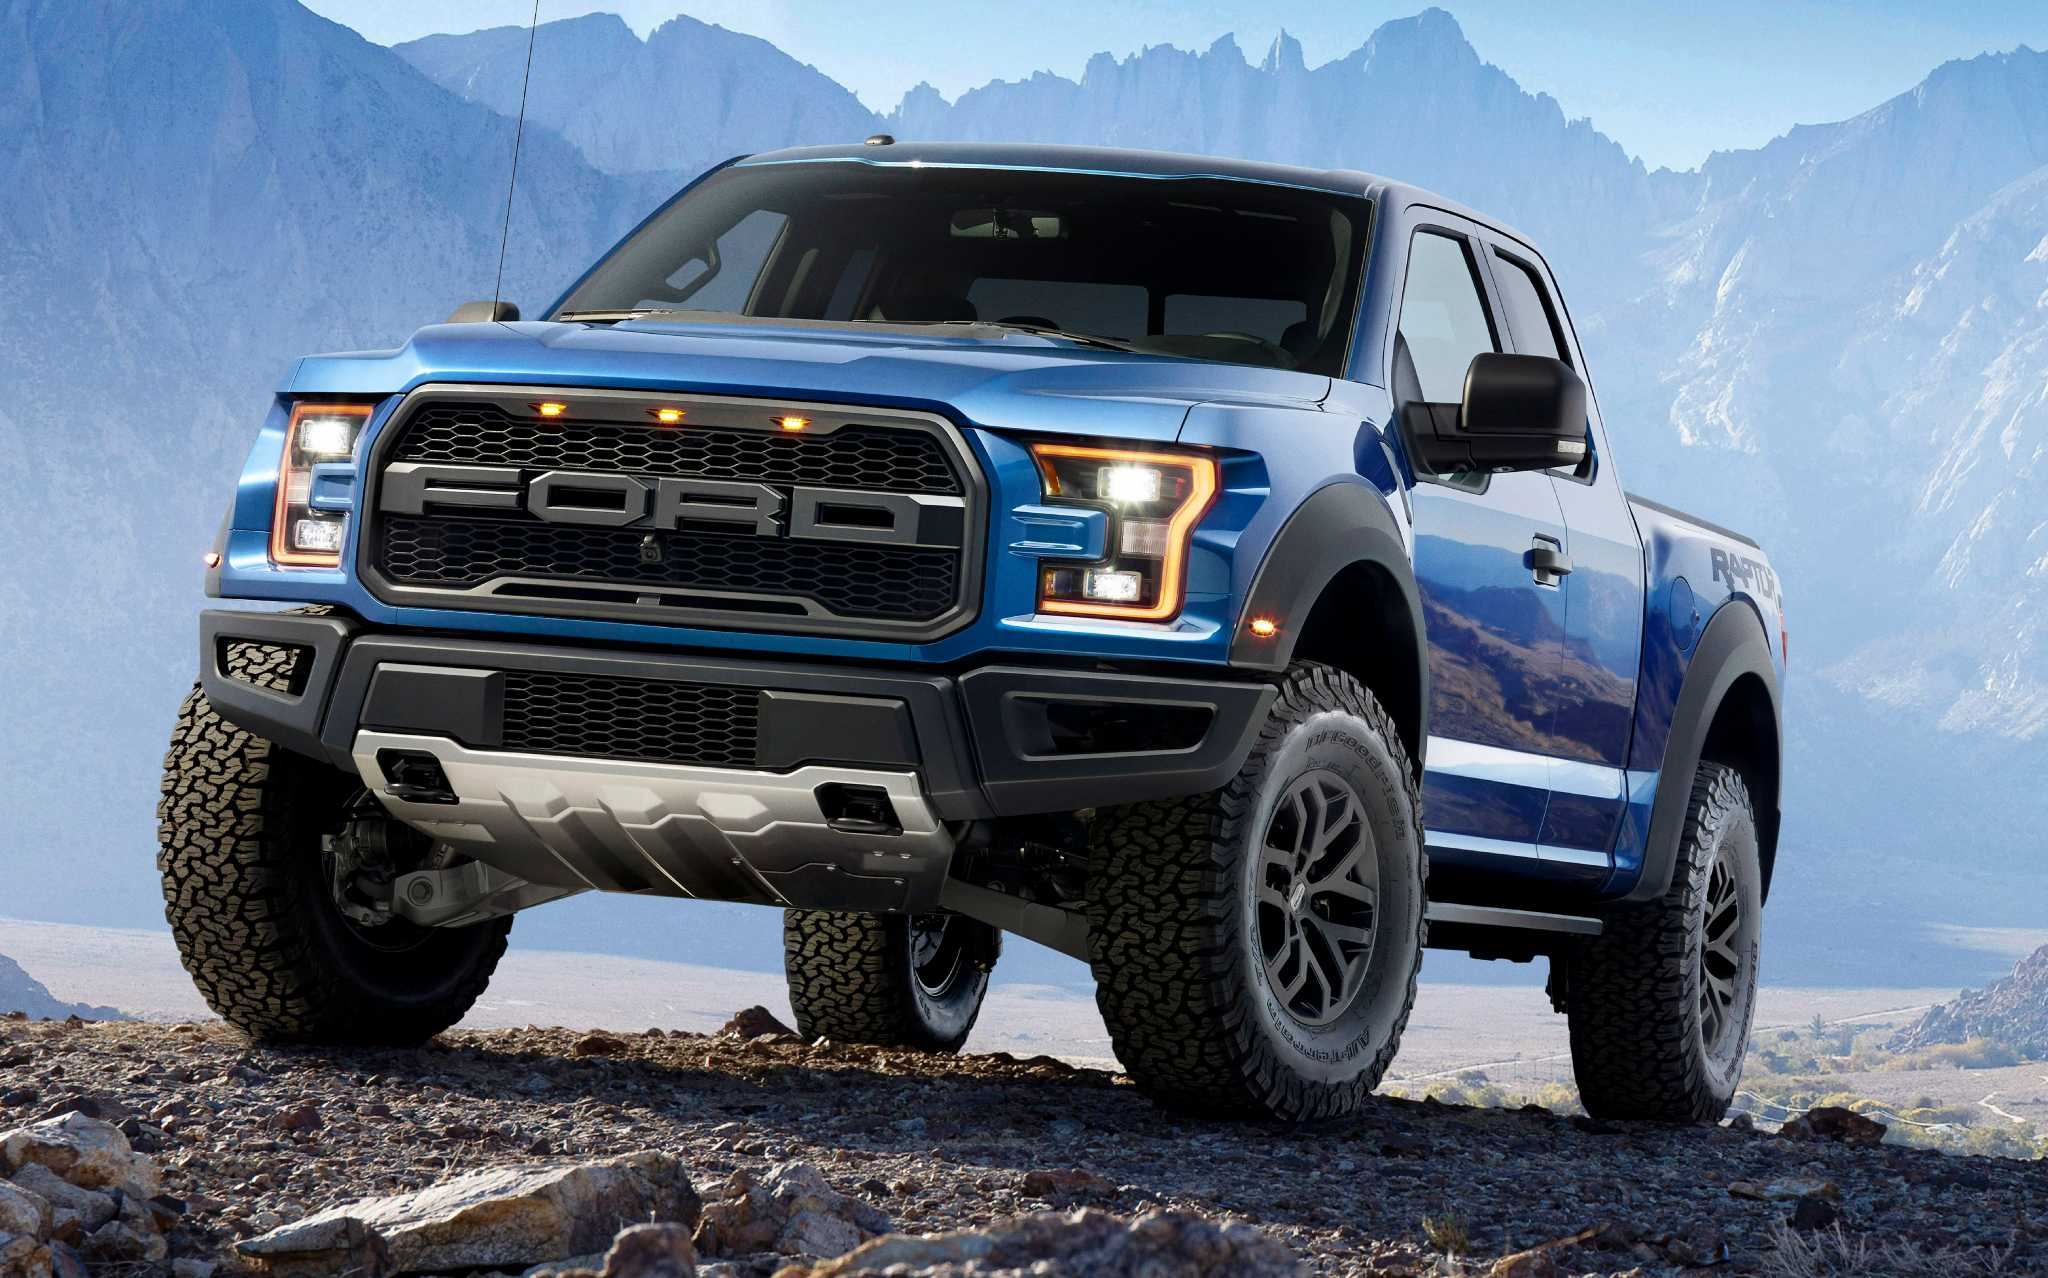 Texas auto experts name the best trucks and SUVs of 2018